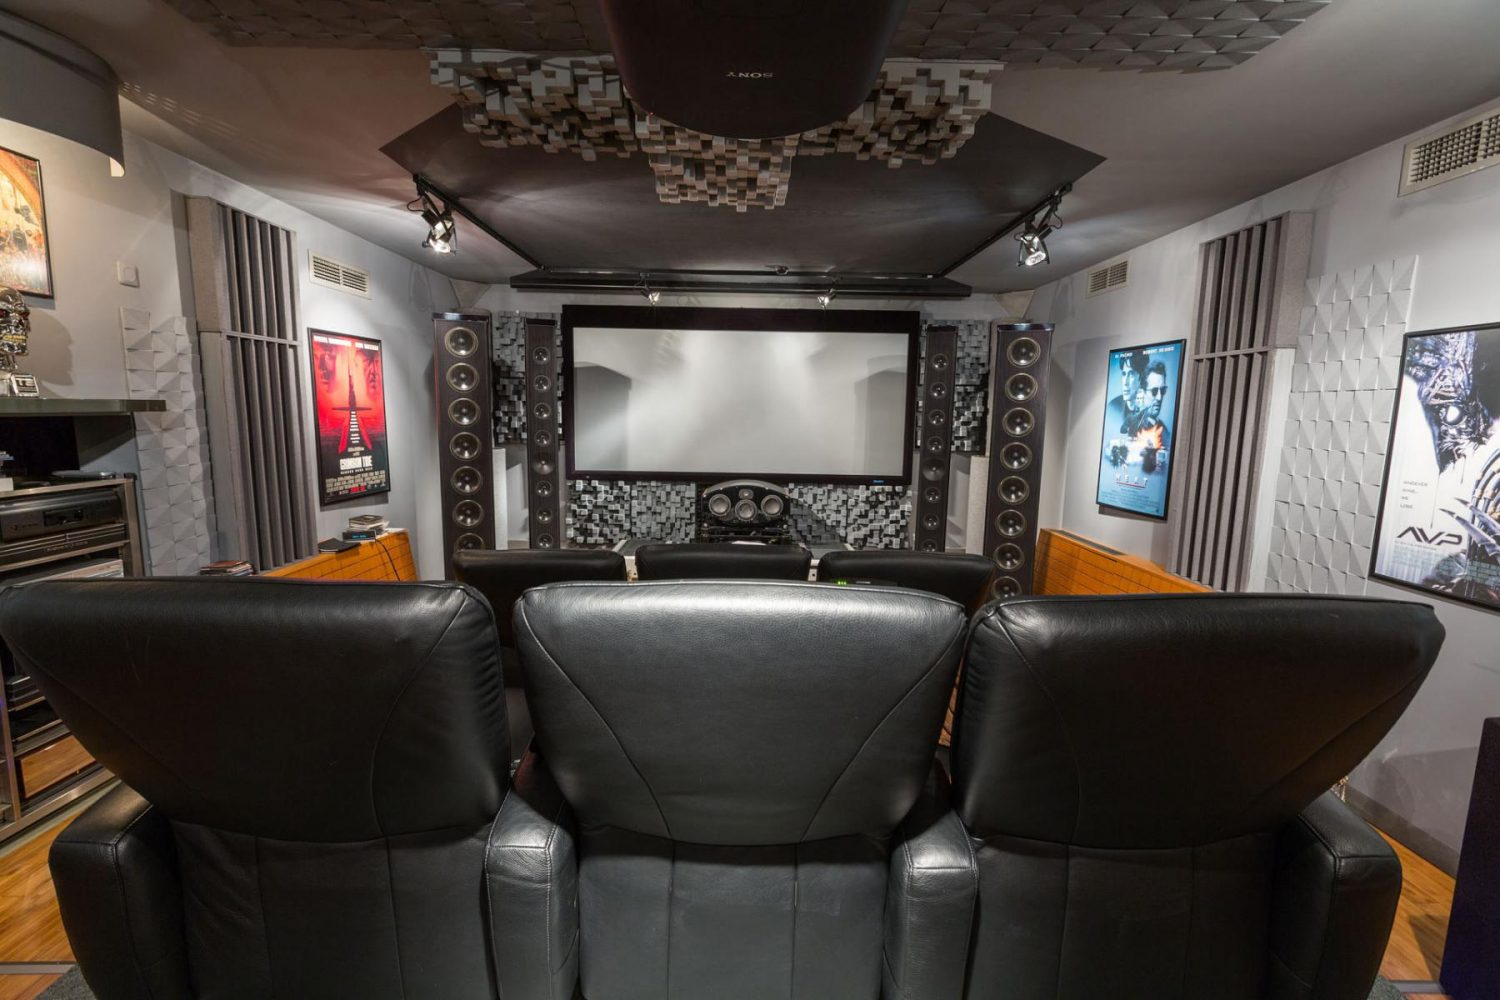 Dtsx Home Theatre System